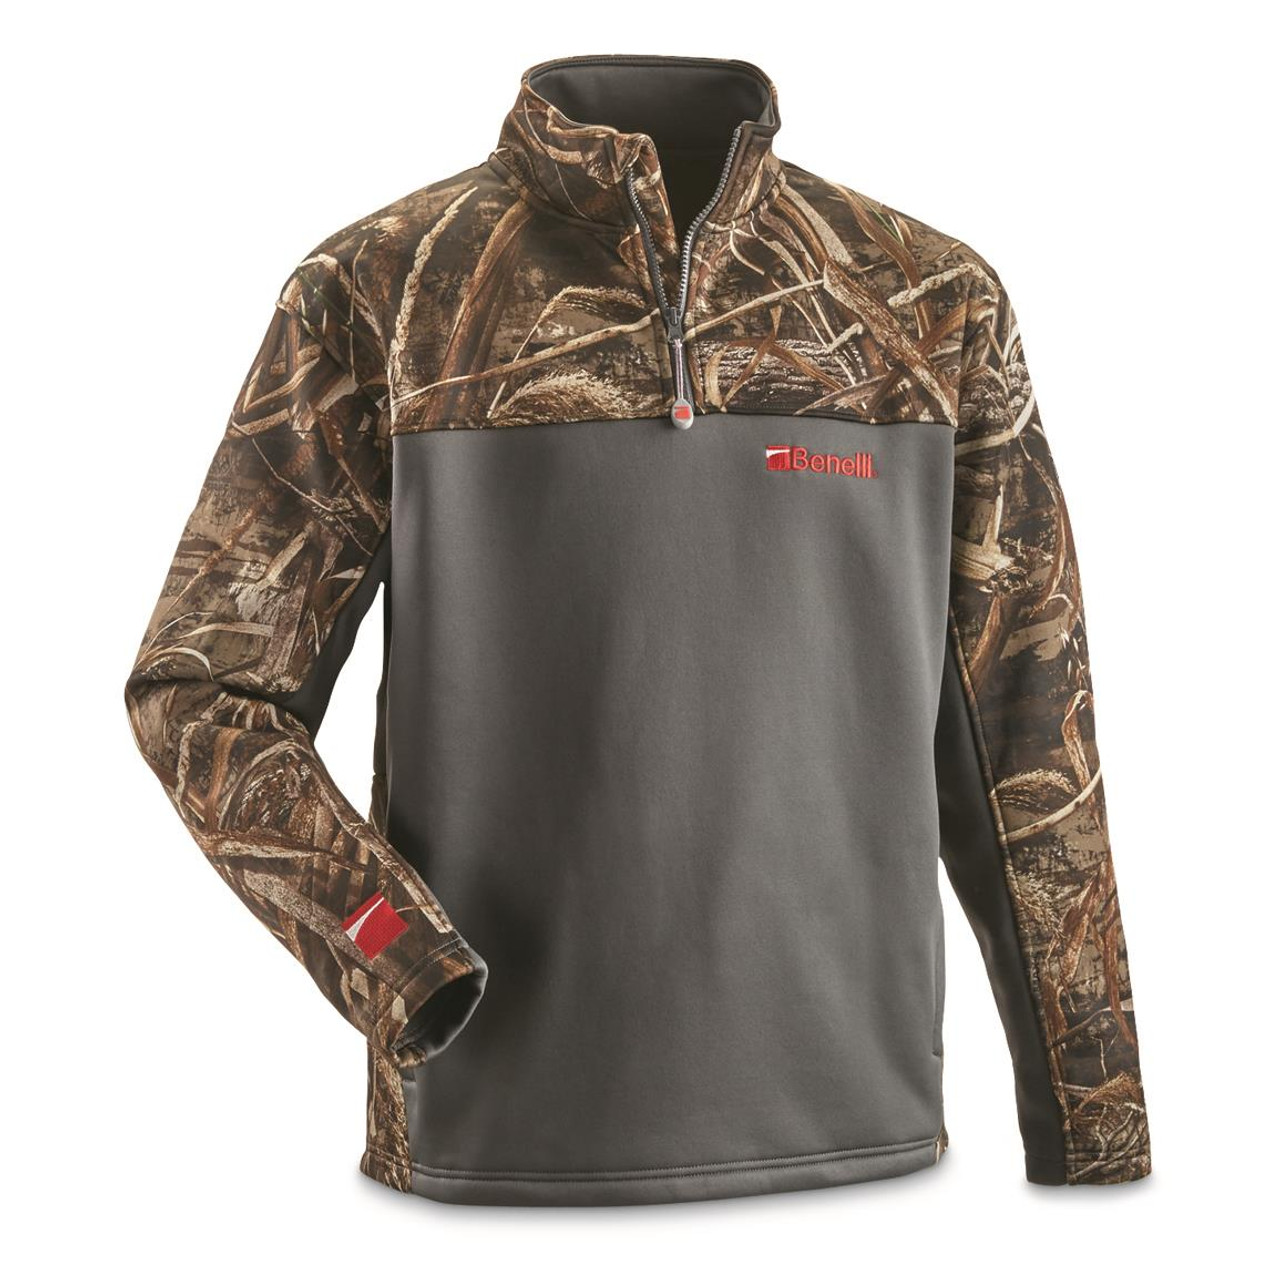 Benelli 1/4 Zip Pullover Charcoal and Camo 3X Large